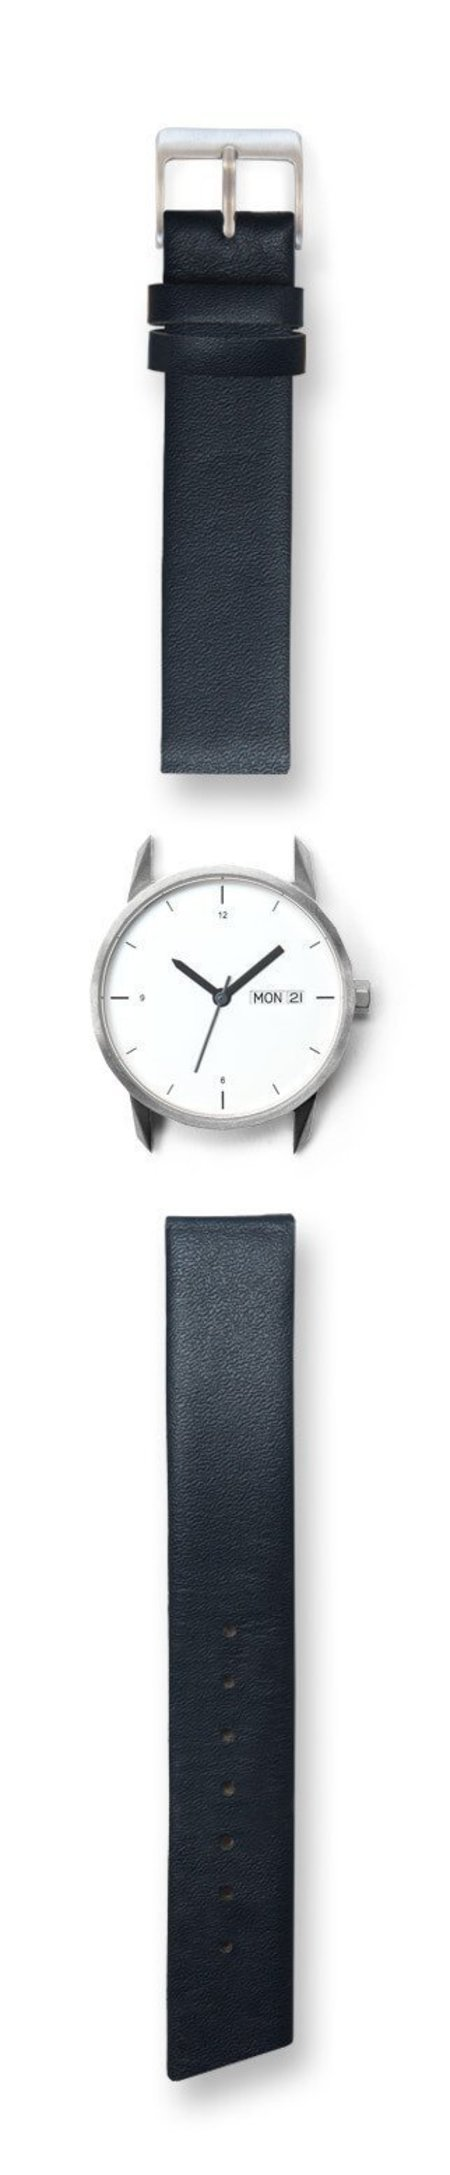 Unisex Tinker Watches 34mm Silver Watch Navy Quick-Release Strap